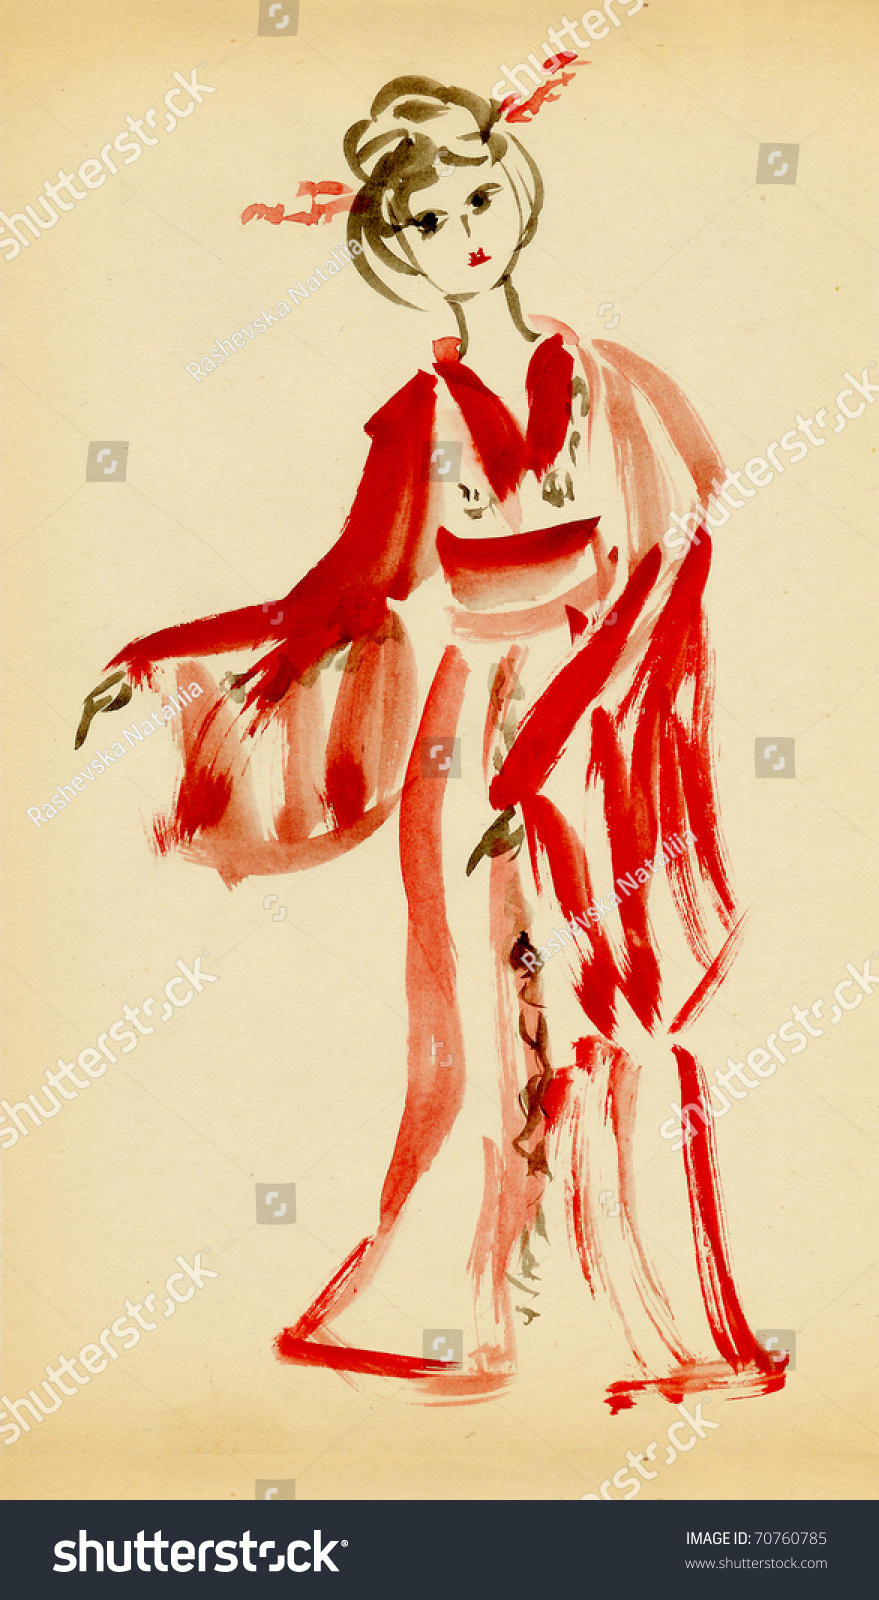 The lady in kimono dancing drawing in traditional japanese style